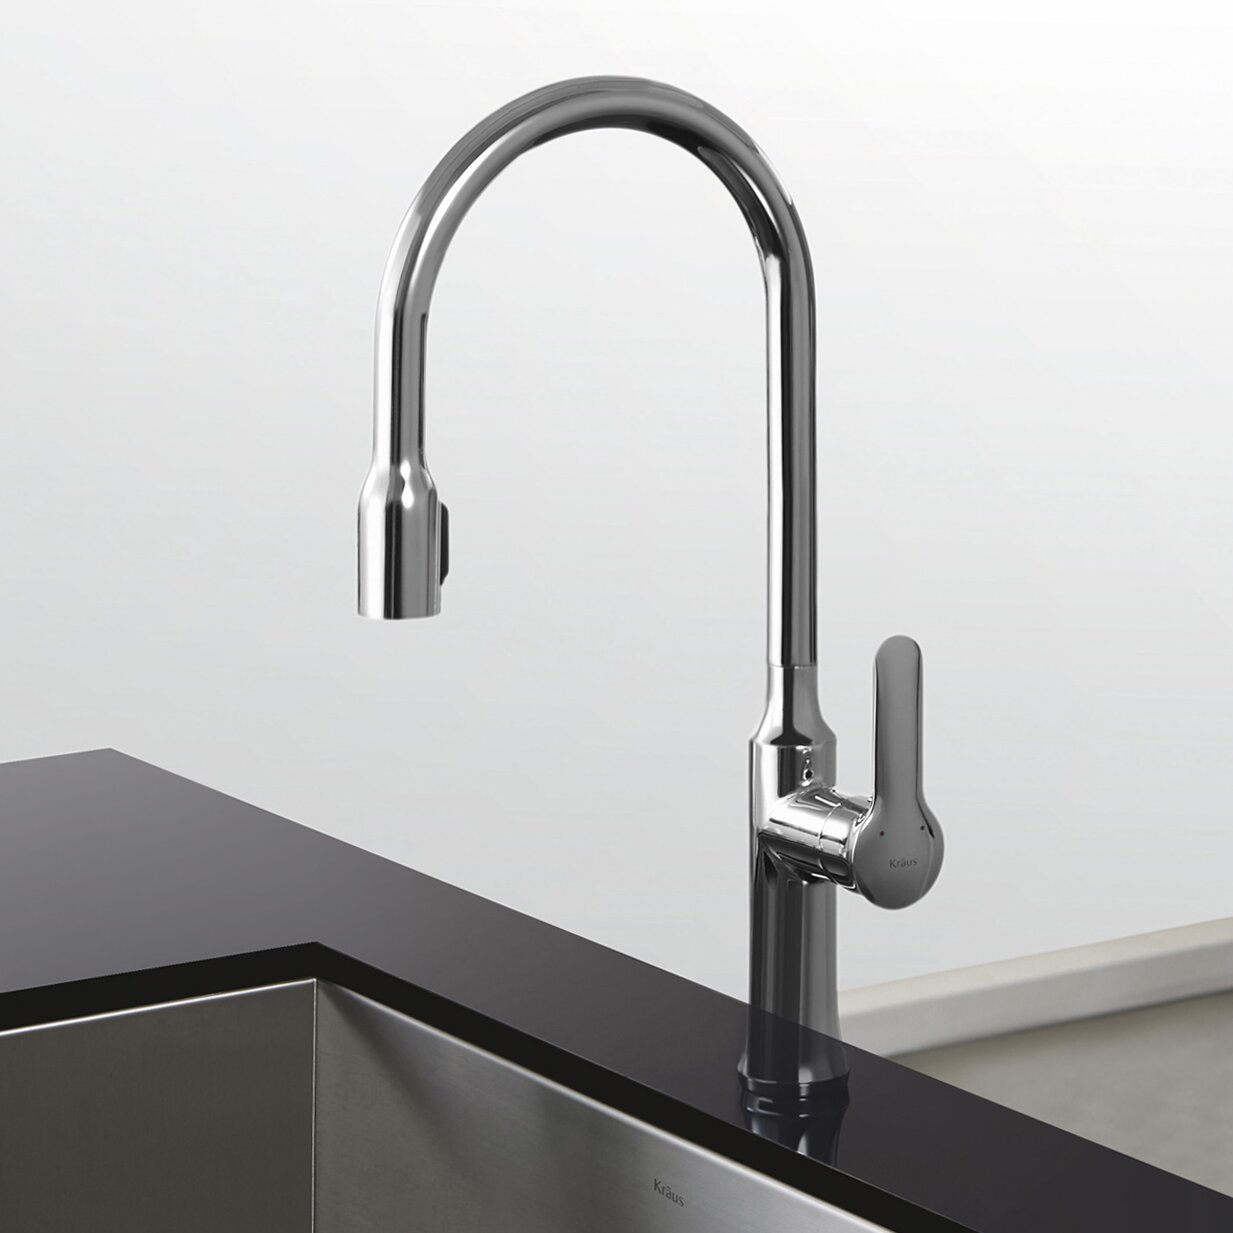 kraus nola single lever concealed pull down kitchen kraus kpf 1602 review kitchen faucet reviews